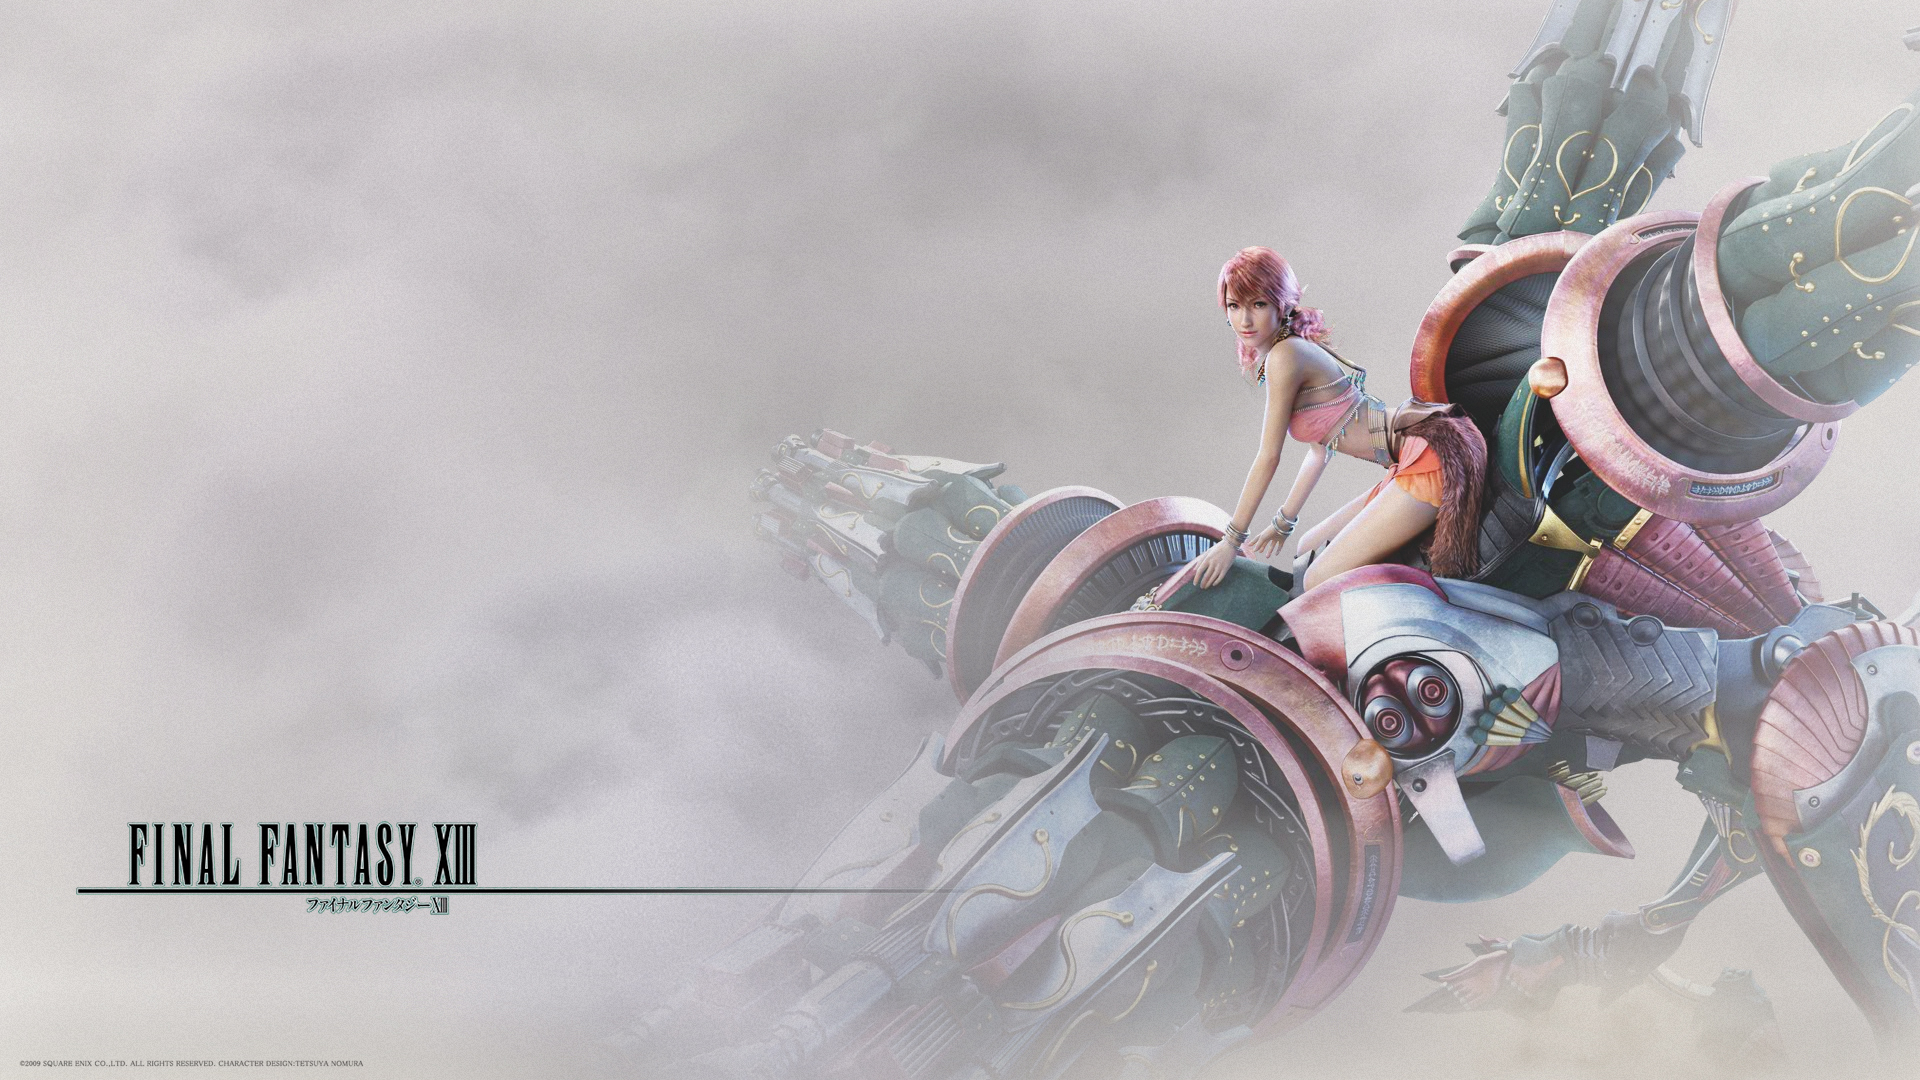 Wallpapers Final fantasy Wallpapers 1920x1080